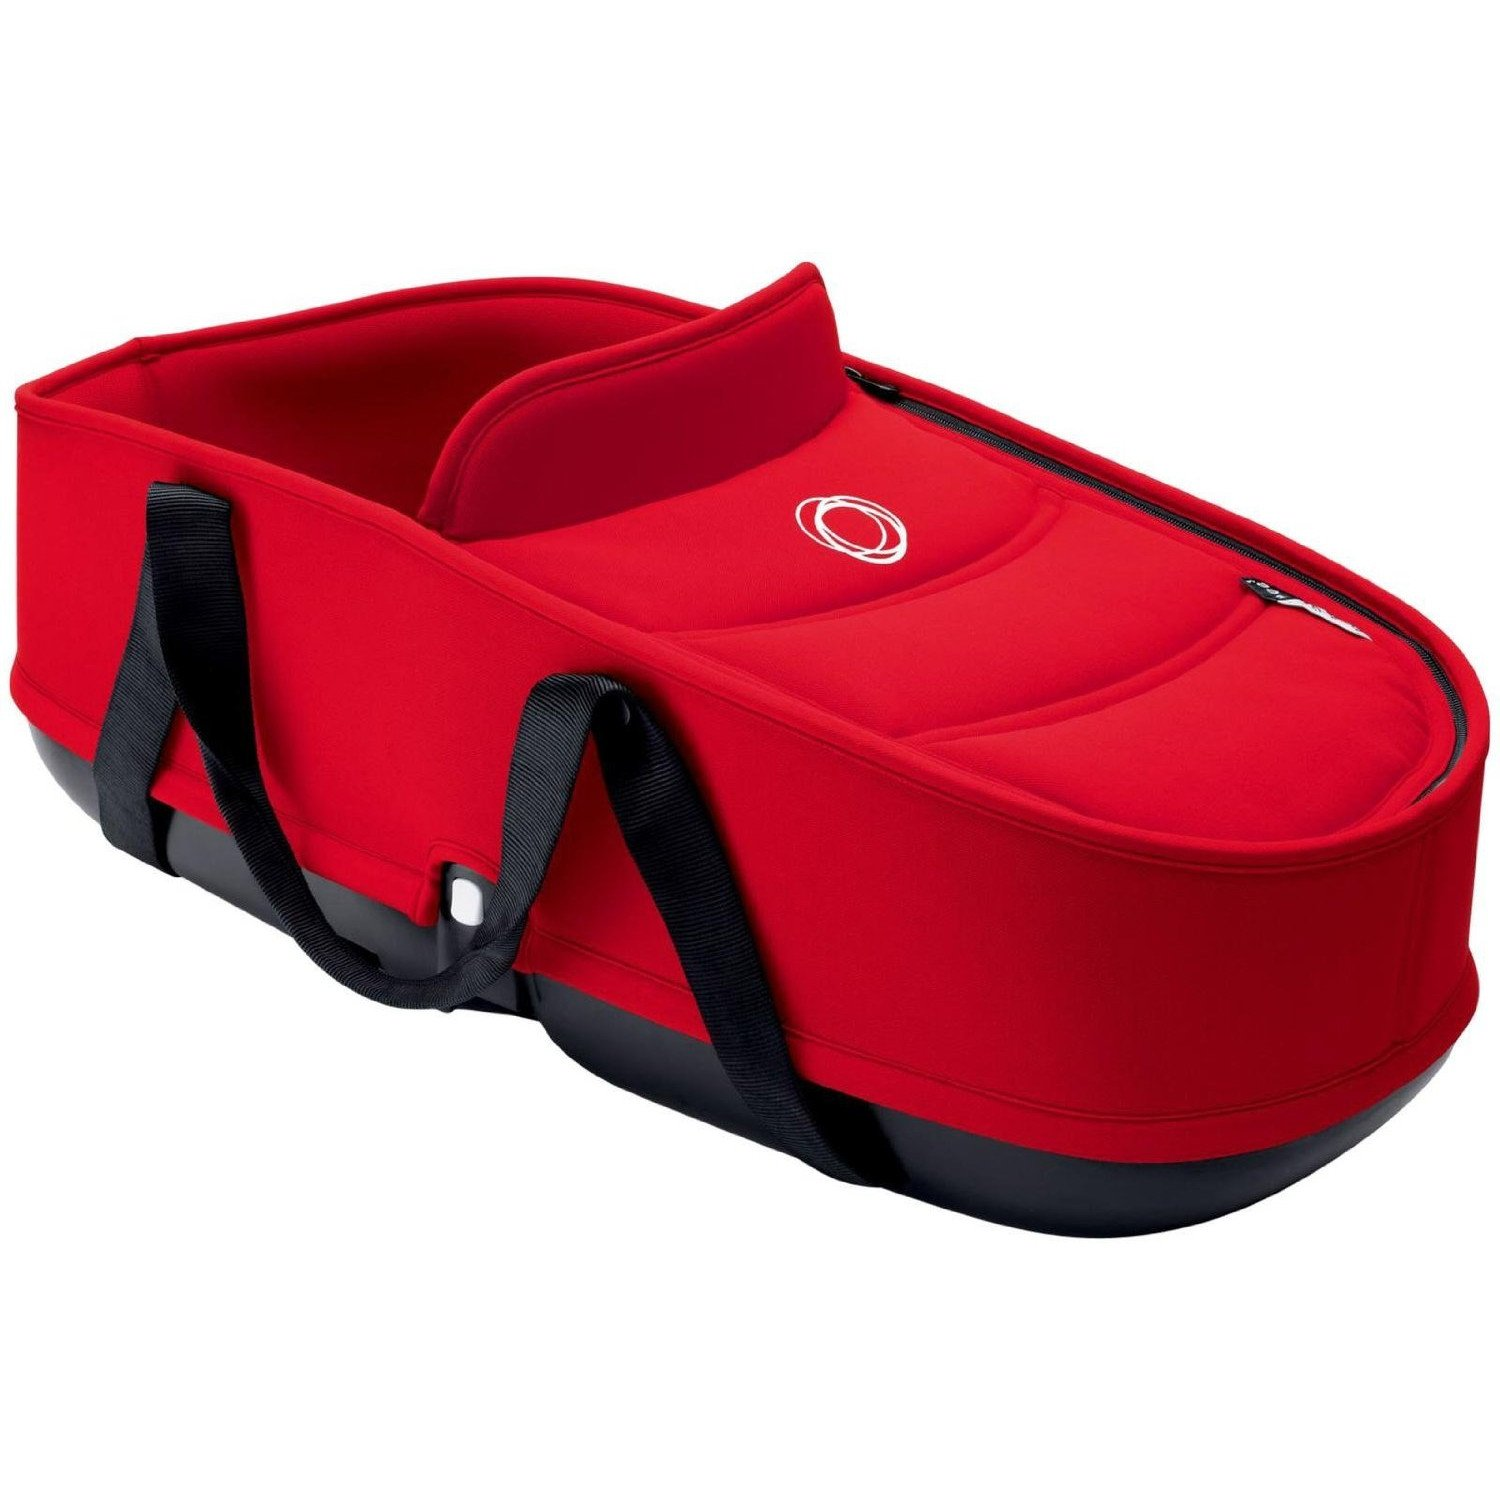 Bugaboo Bee3 Bassinet - Red